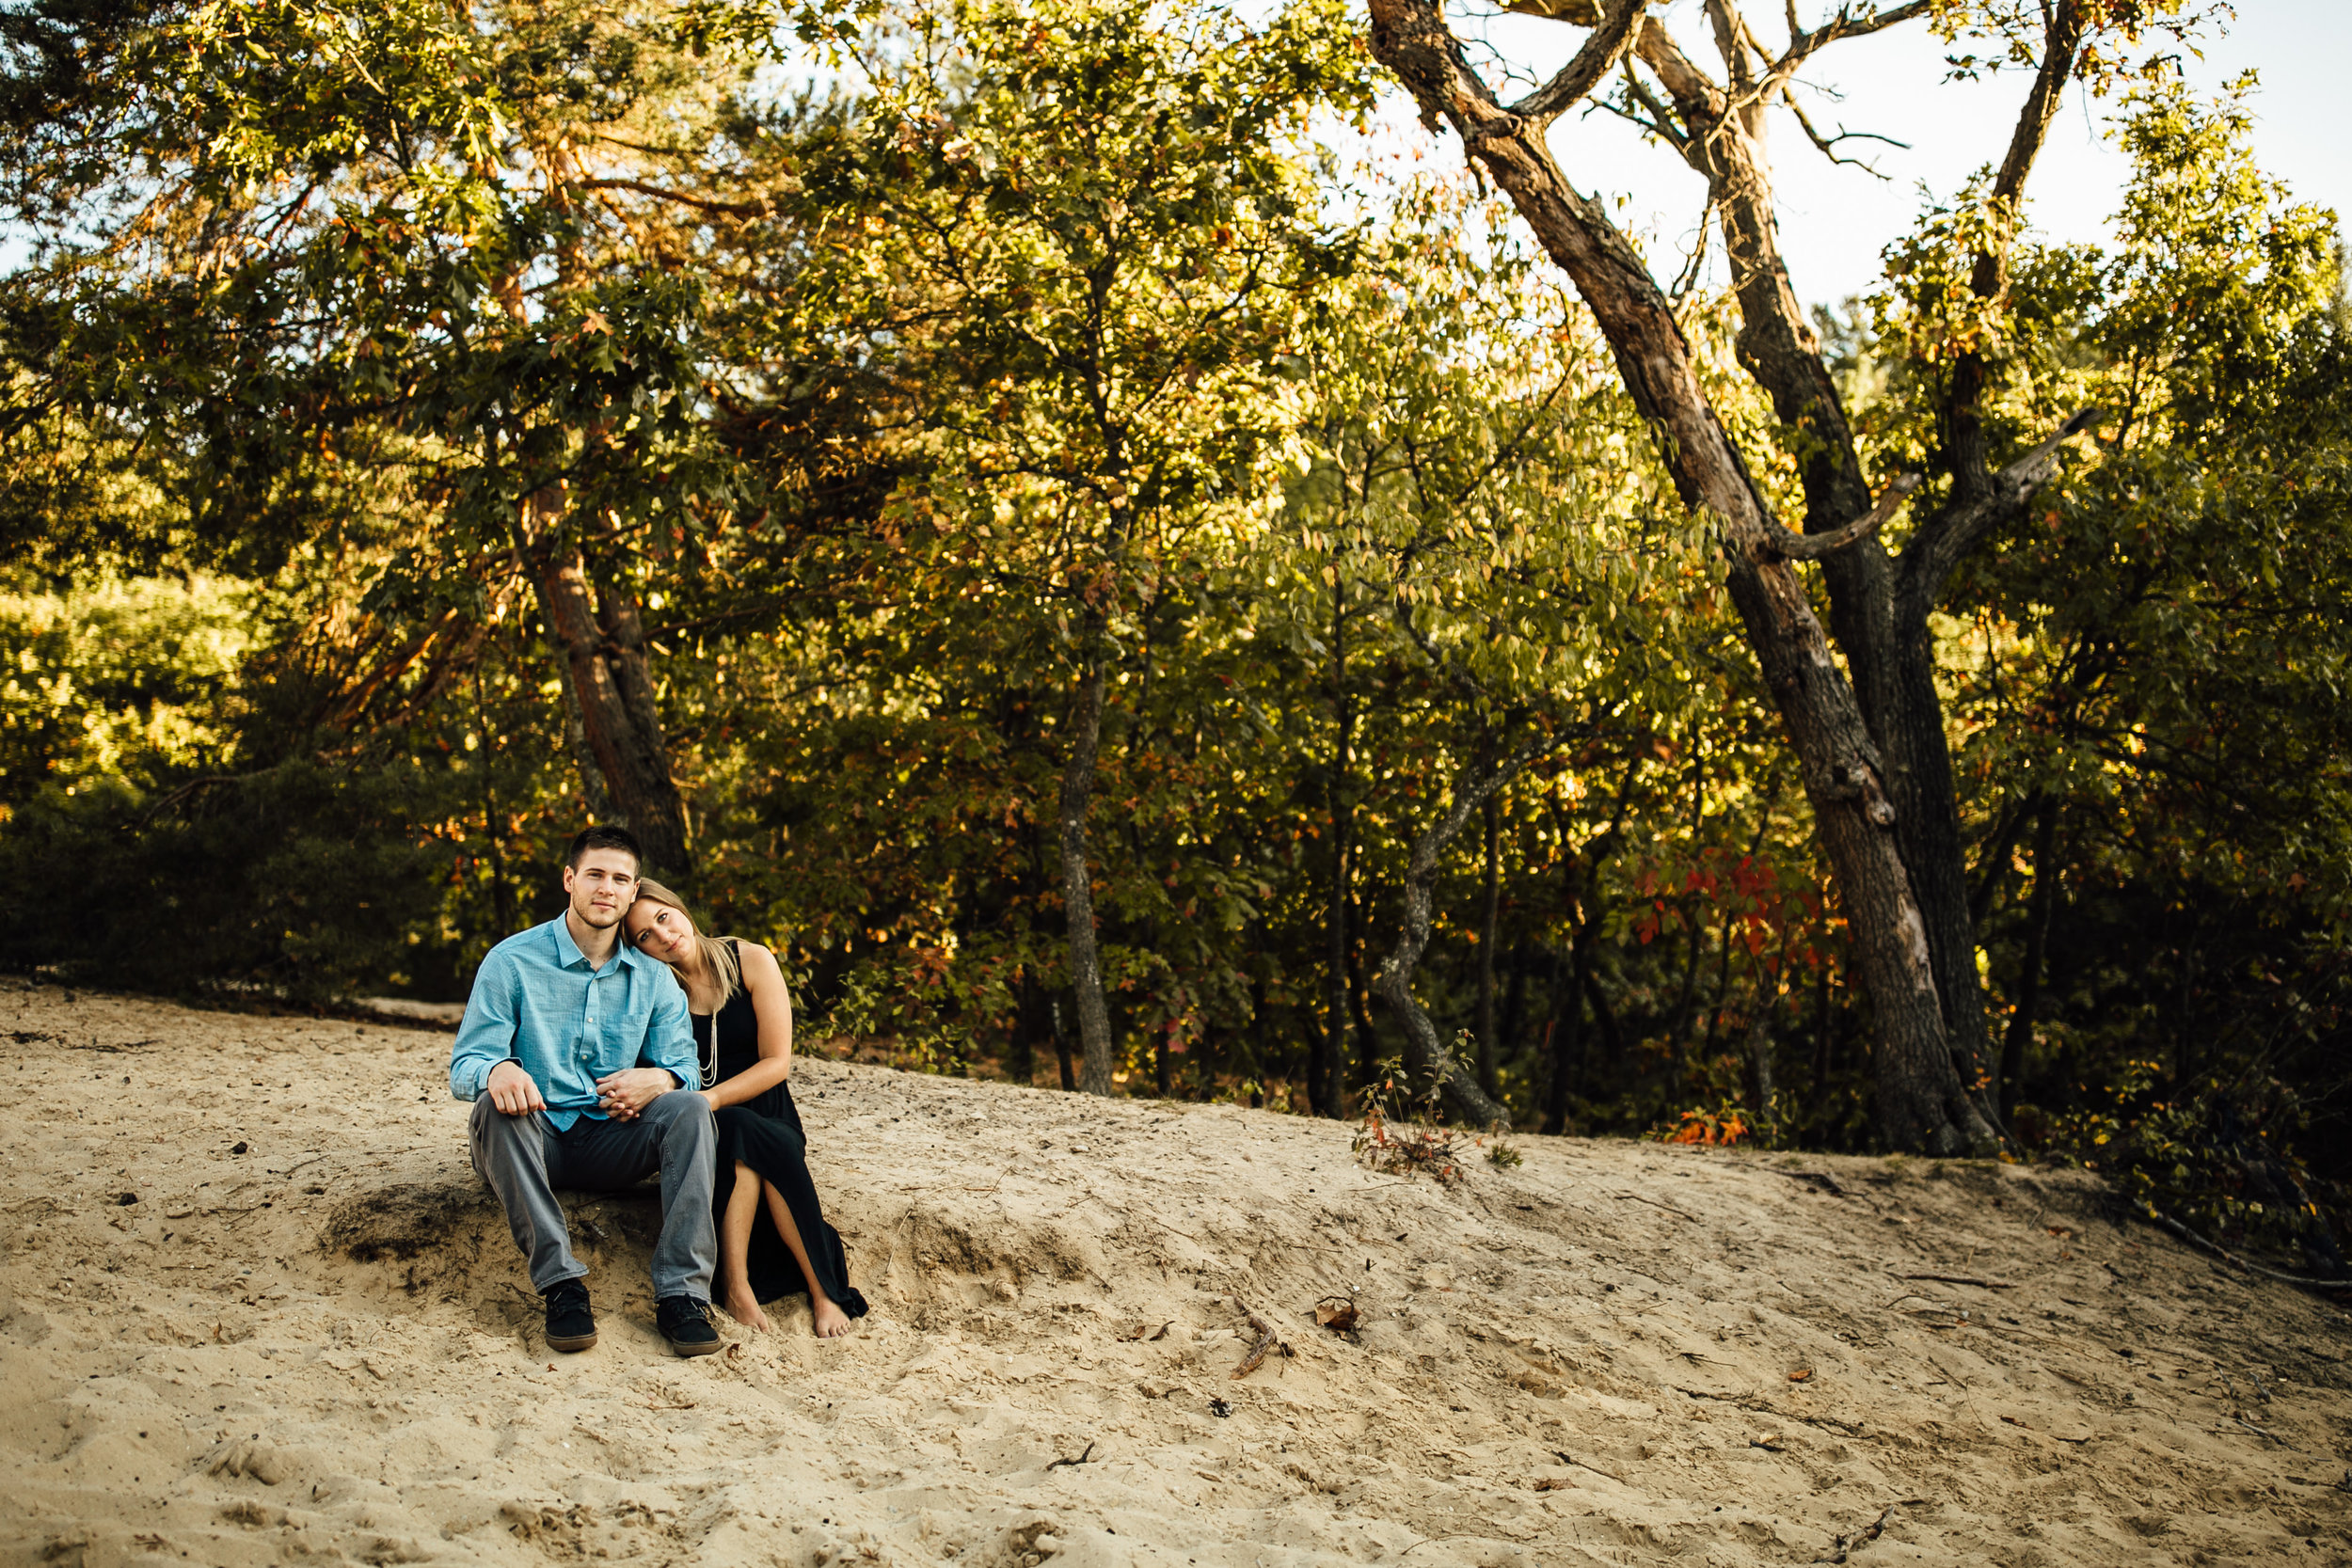 Stephanie-Corey-Grand-Rapids-Engagement-Michigan-Wedding-Photographer-0802.jpg